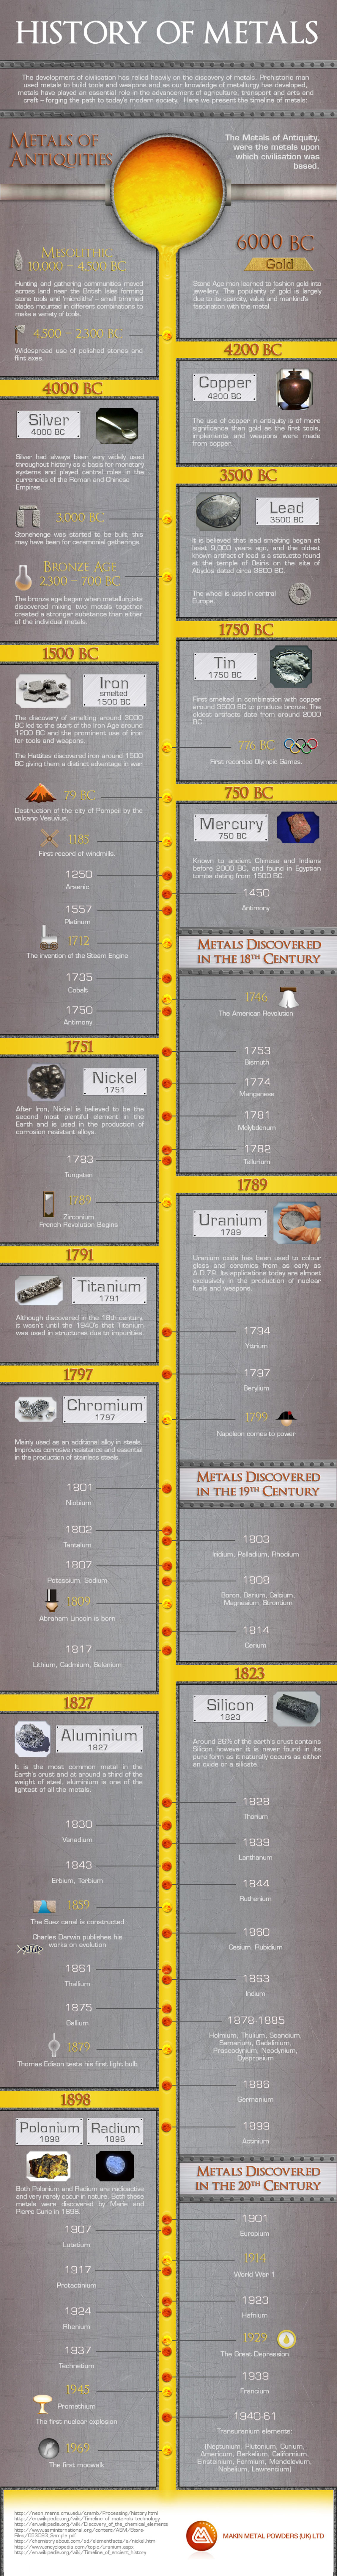 History of Metals - Timeline Infographic